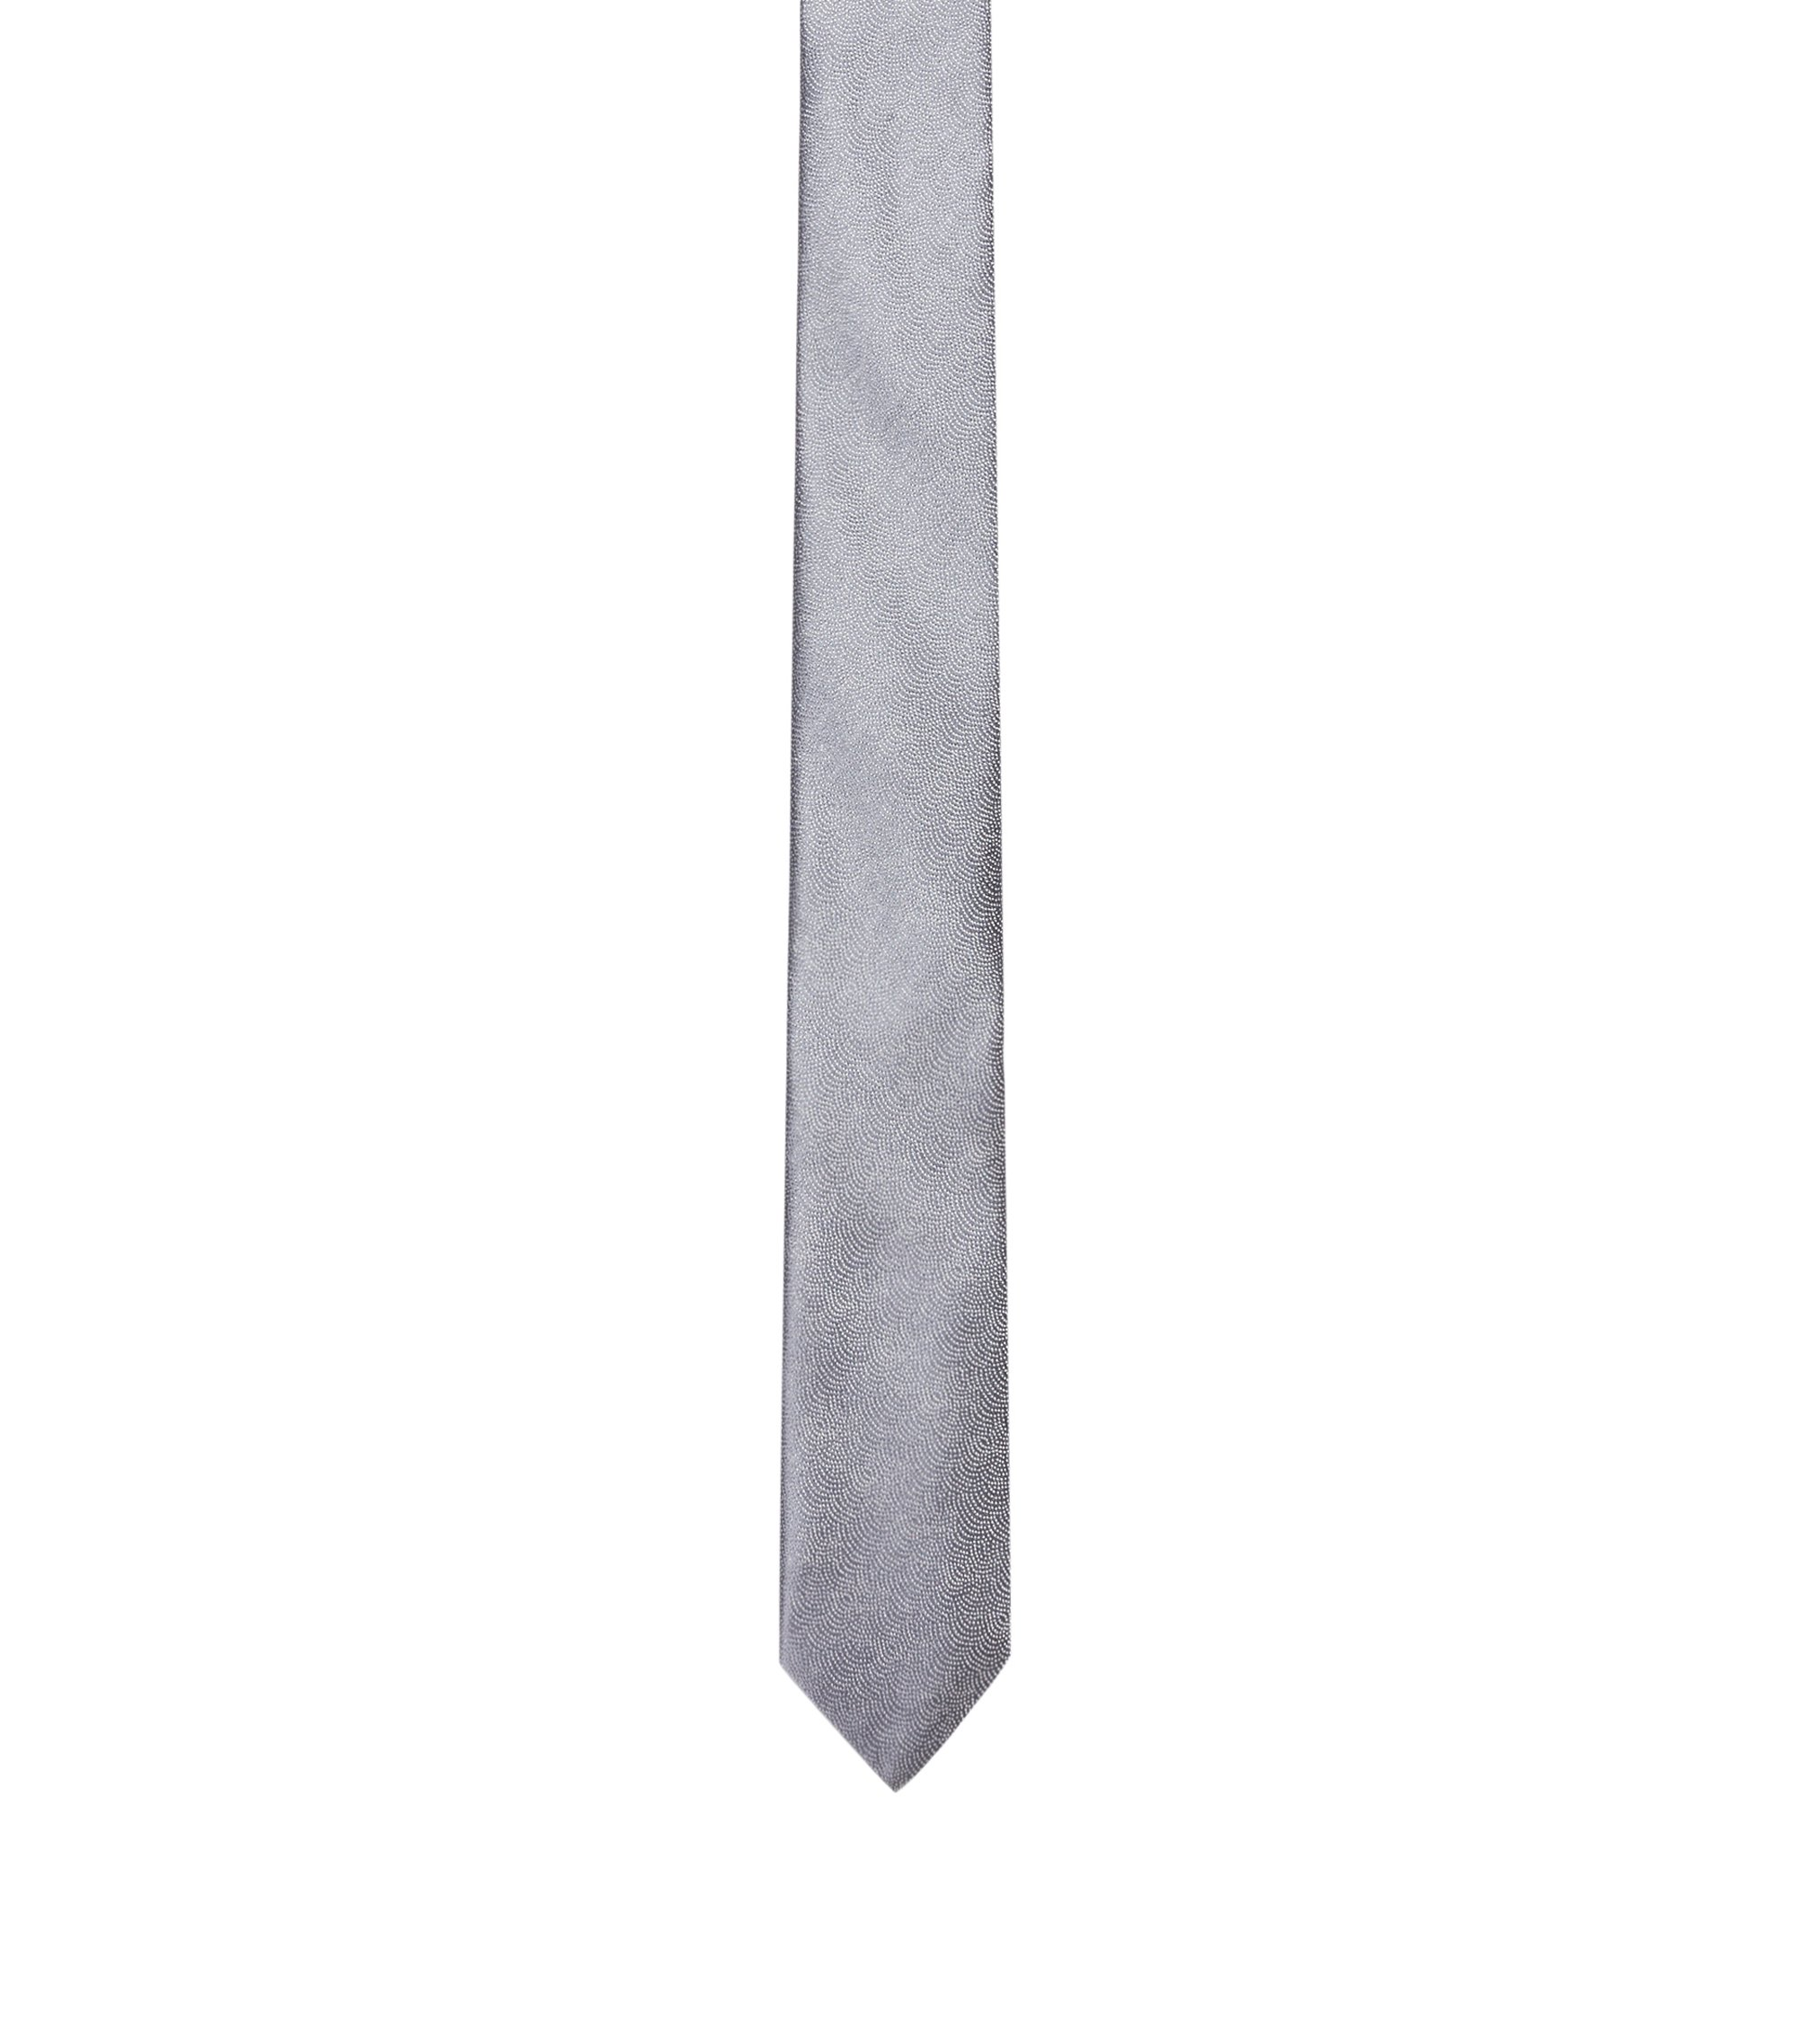 Scalloped Micro-Dot Printed Italian Silk Slim Tie, Grey